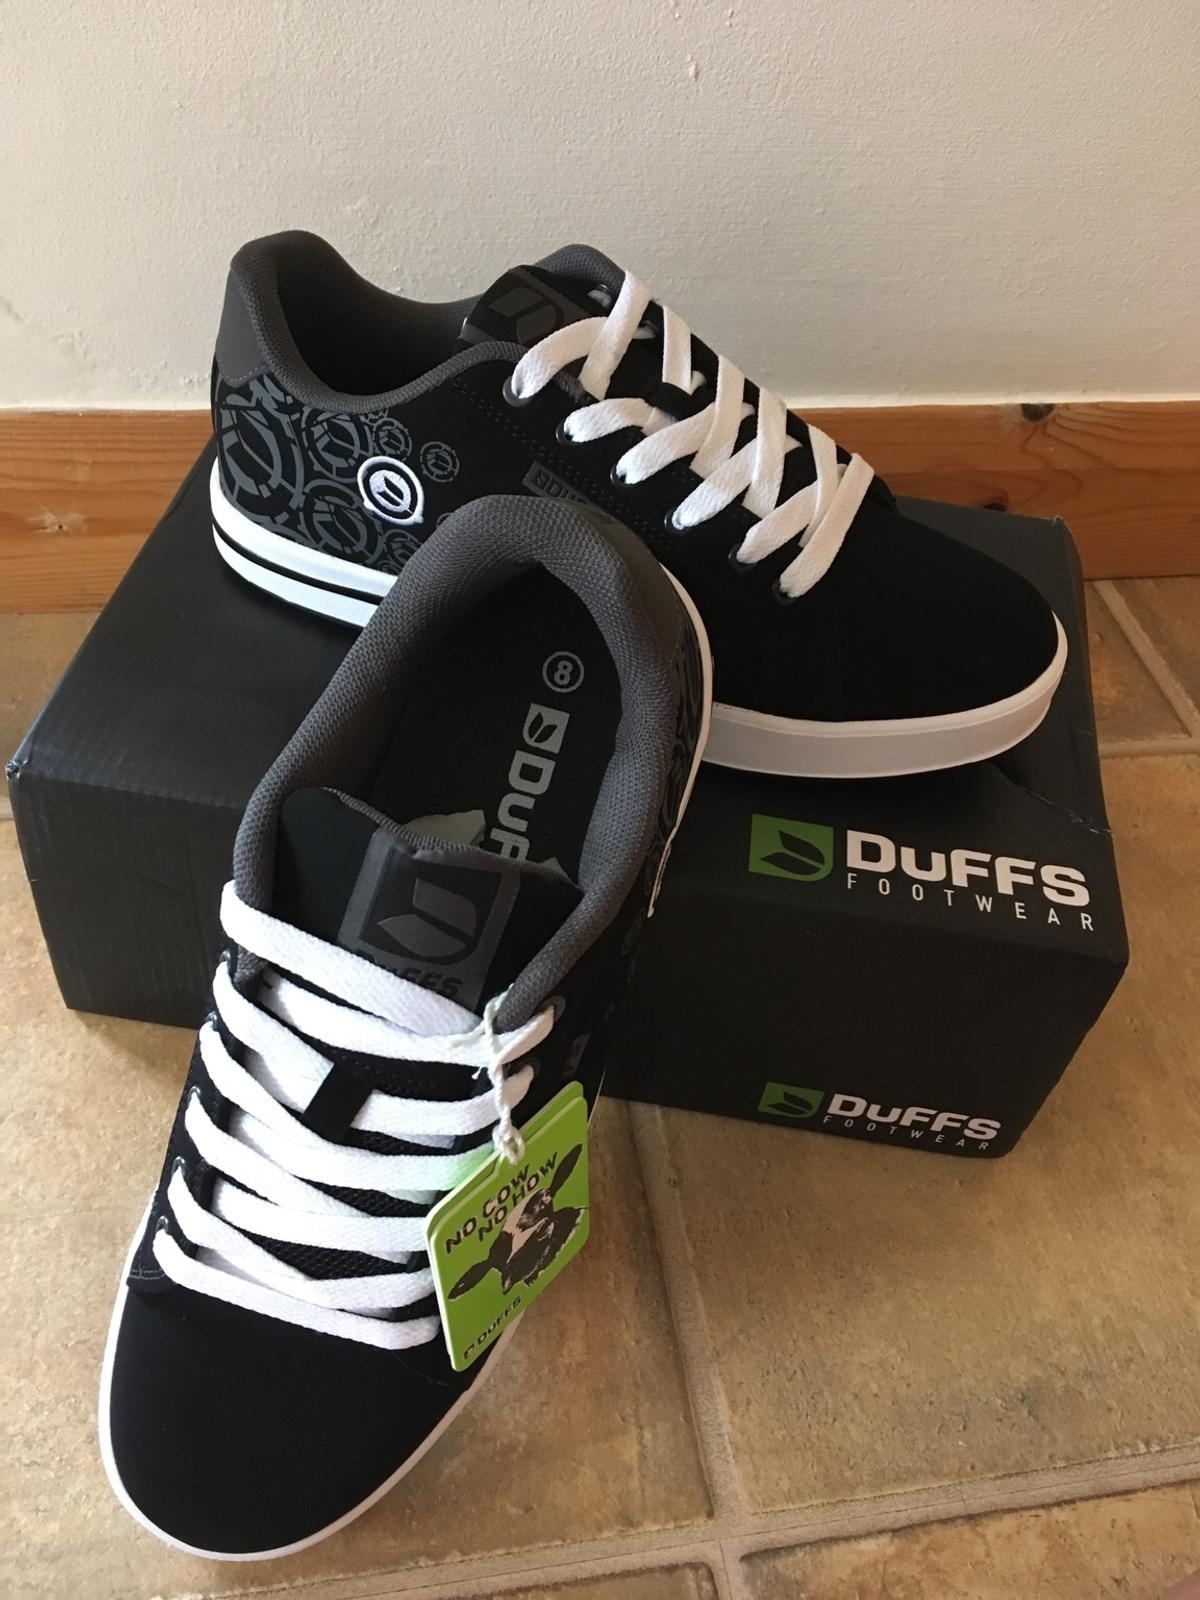 38c81a10f057 NEW DuFFS Trainers Skate Shoes Size 8 Adult in B80-Avon for £15.00 ...